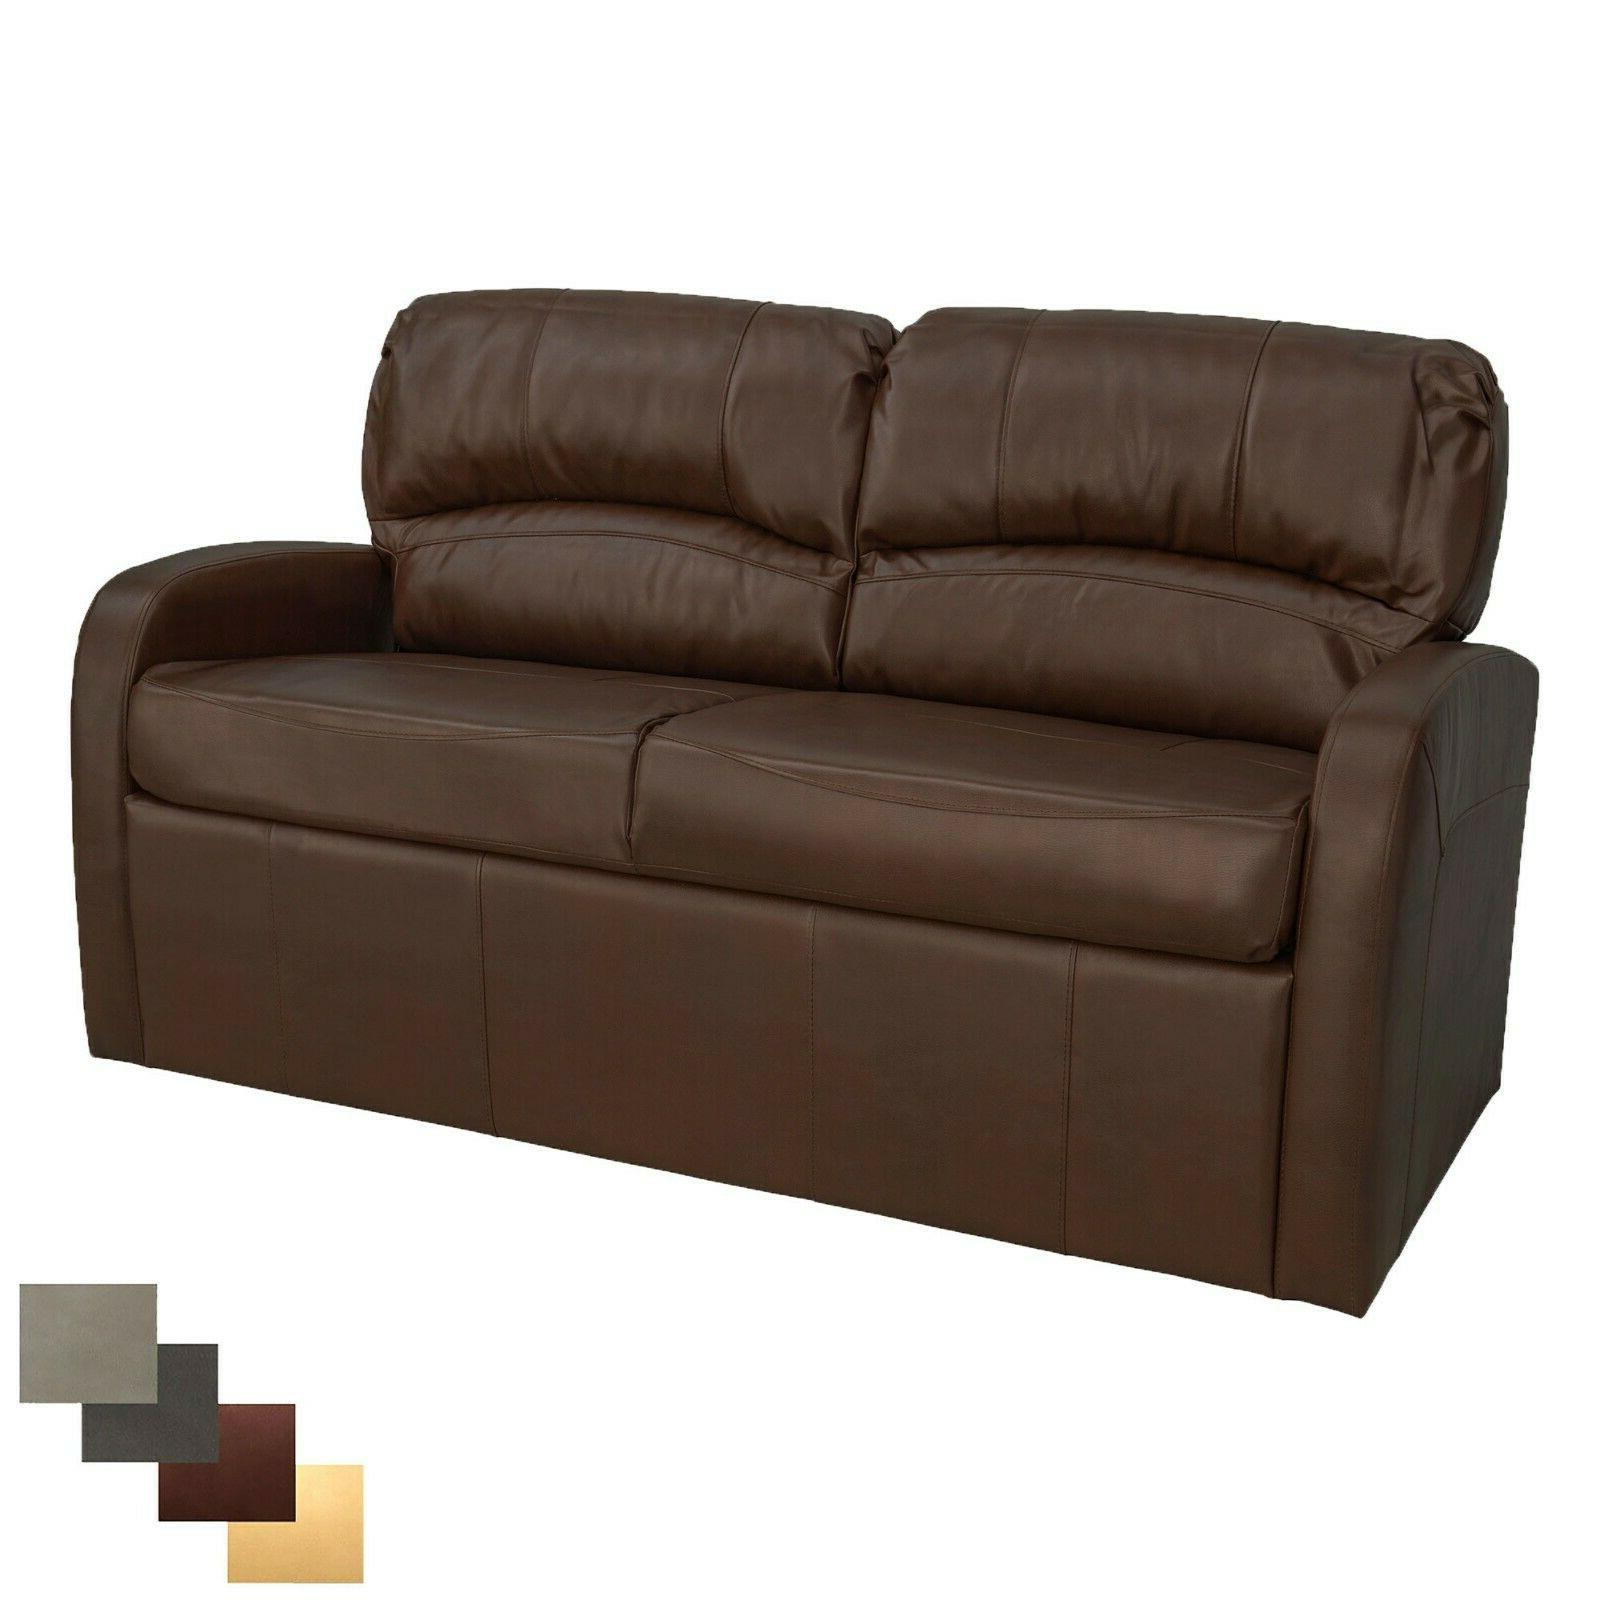 RecPro Charles Jack Sofa Couch with Arms Furniture